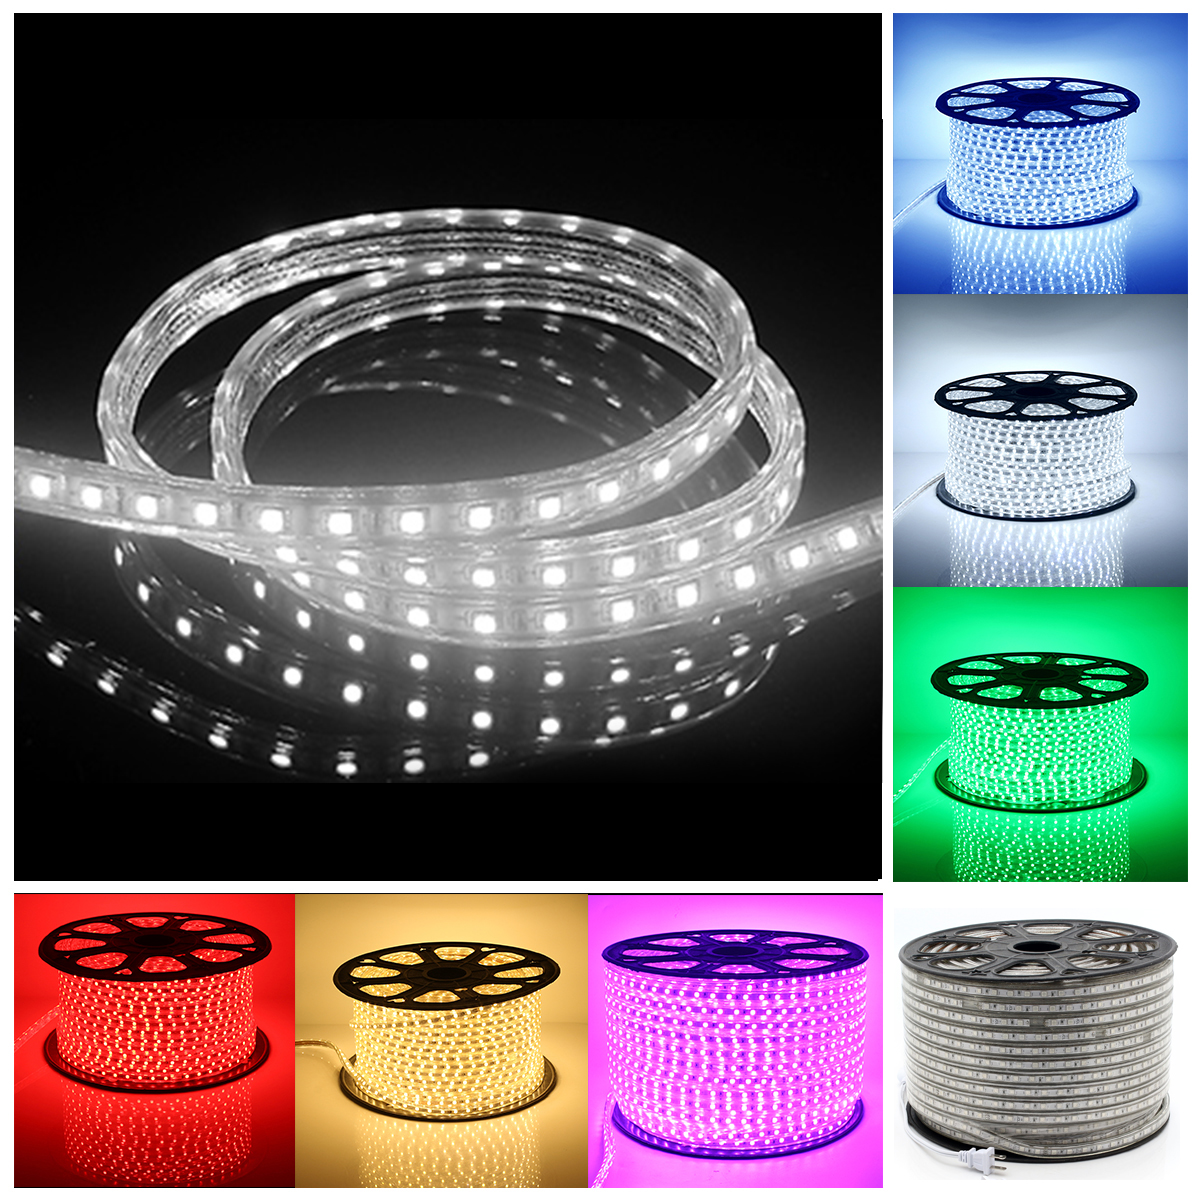 220V LED Strip Light IP67 Waterproof 30M 60 LEDs/ meter Ultra Bright Flexible 5050 SMD LED Outdoor Garden Home Strip Rope Light giant xtc advanced 27 5 2 2016